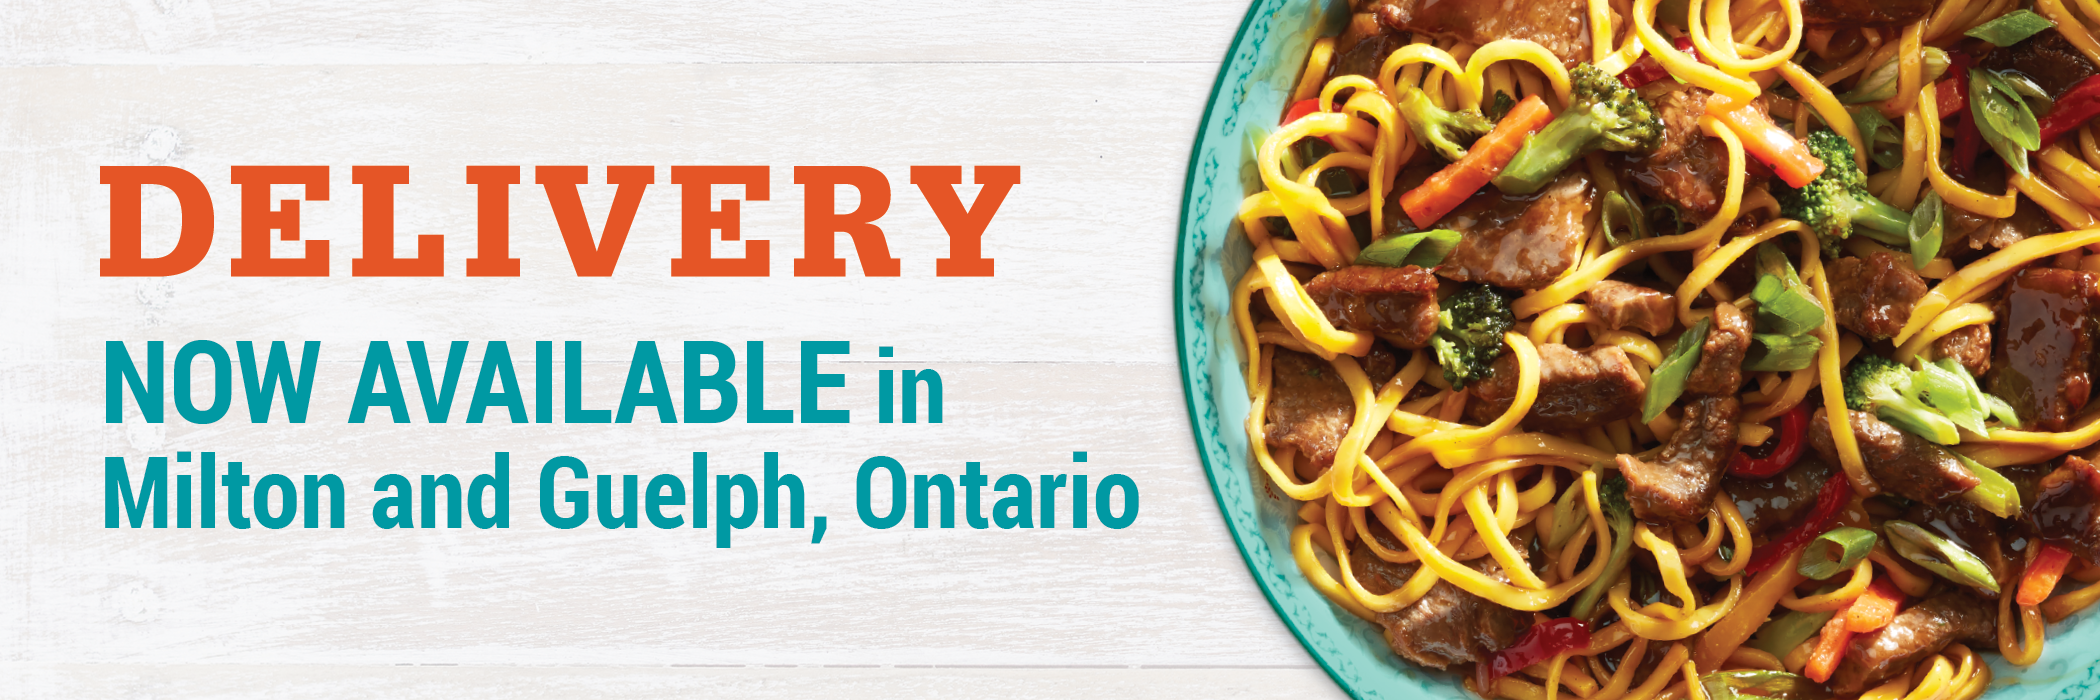 Delivery now available in Milton and Guelph, Ontario